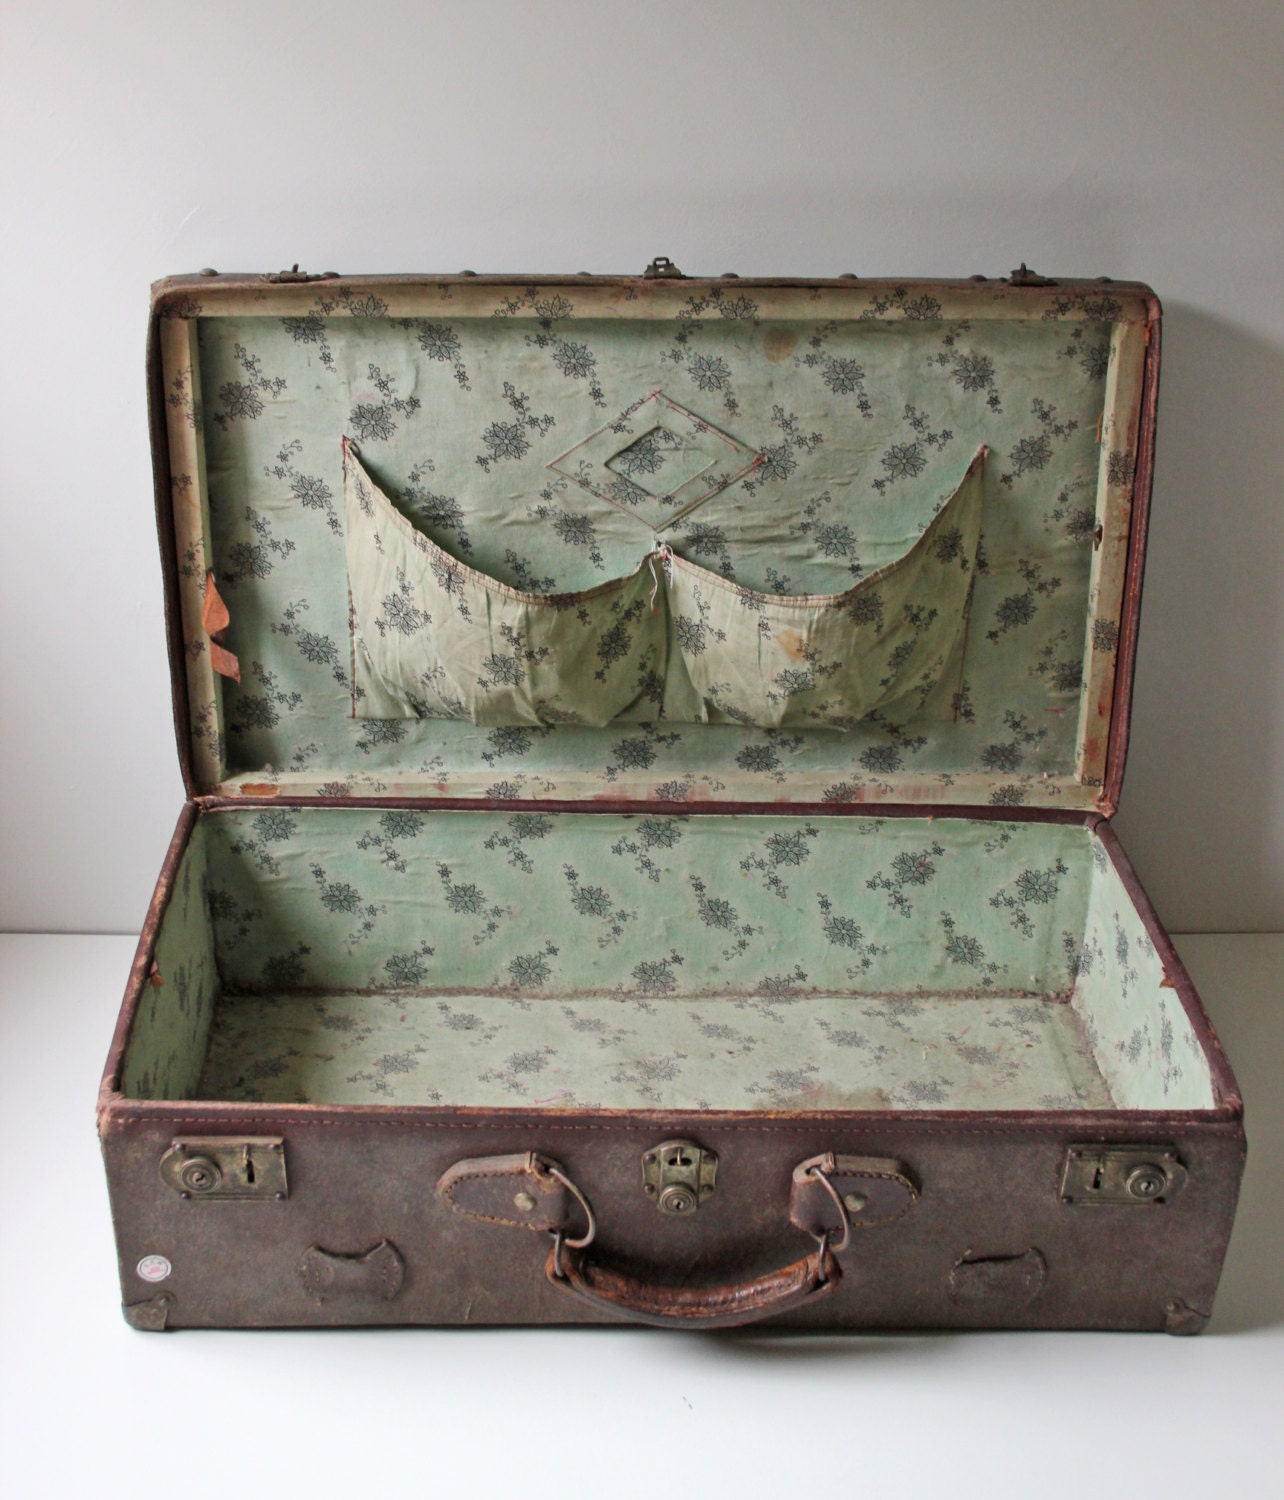 Antique brown leather suitcase from 1900s - Vintage suitcase ...